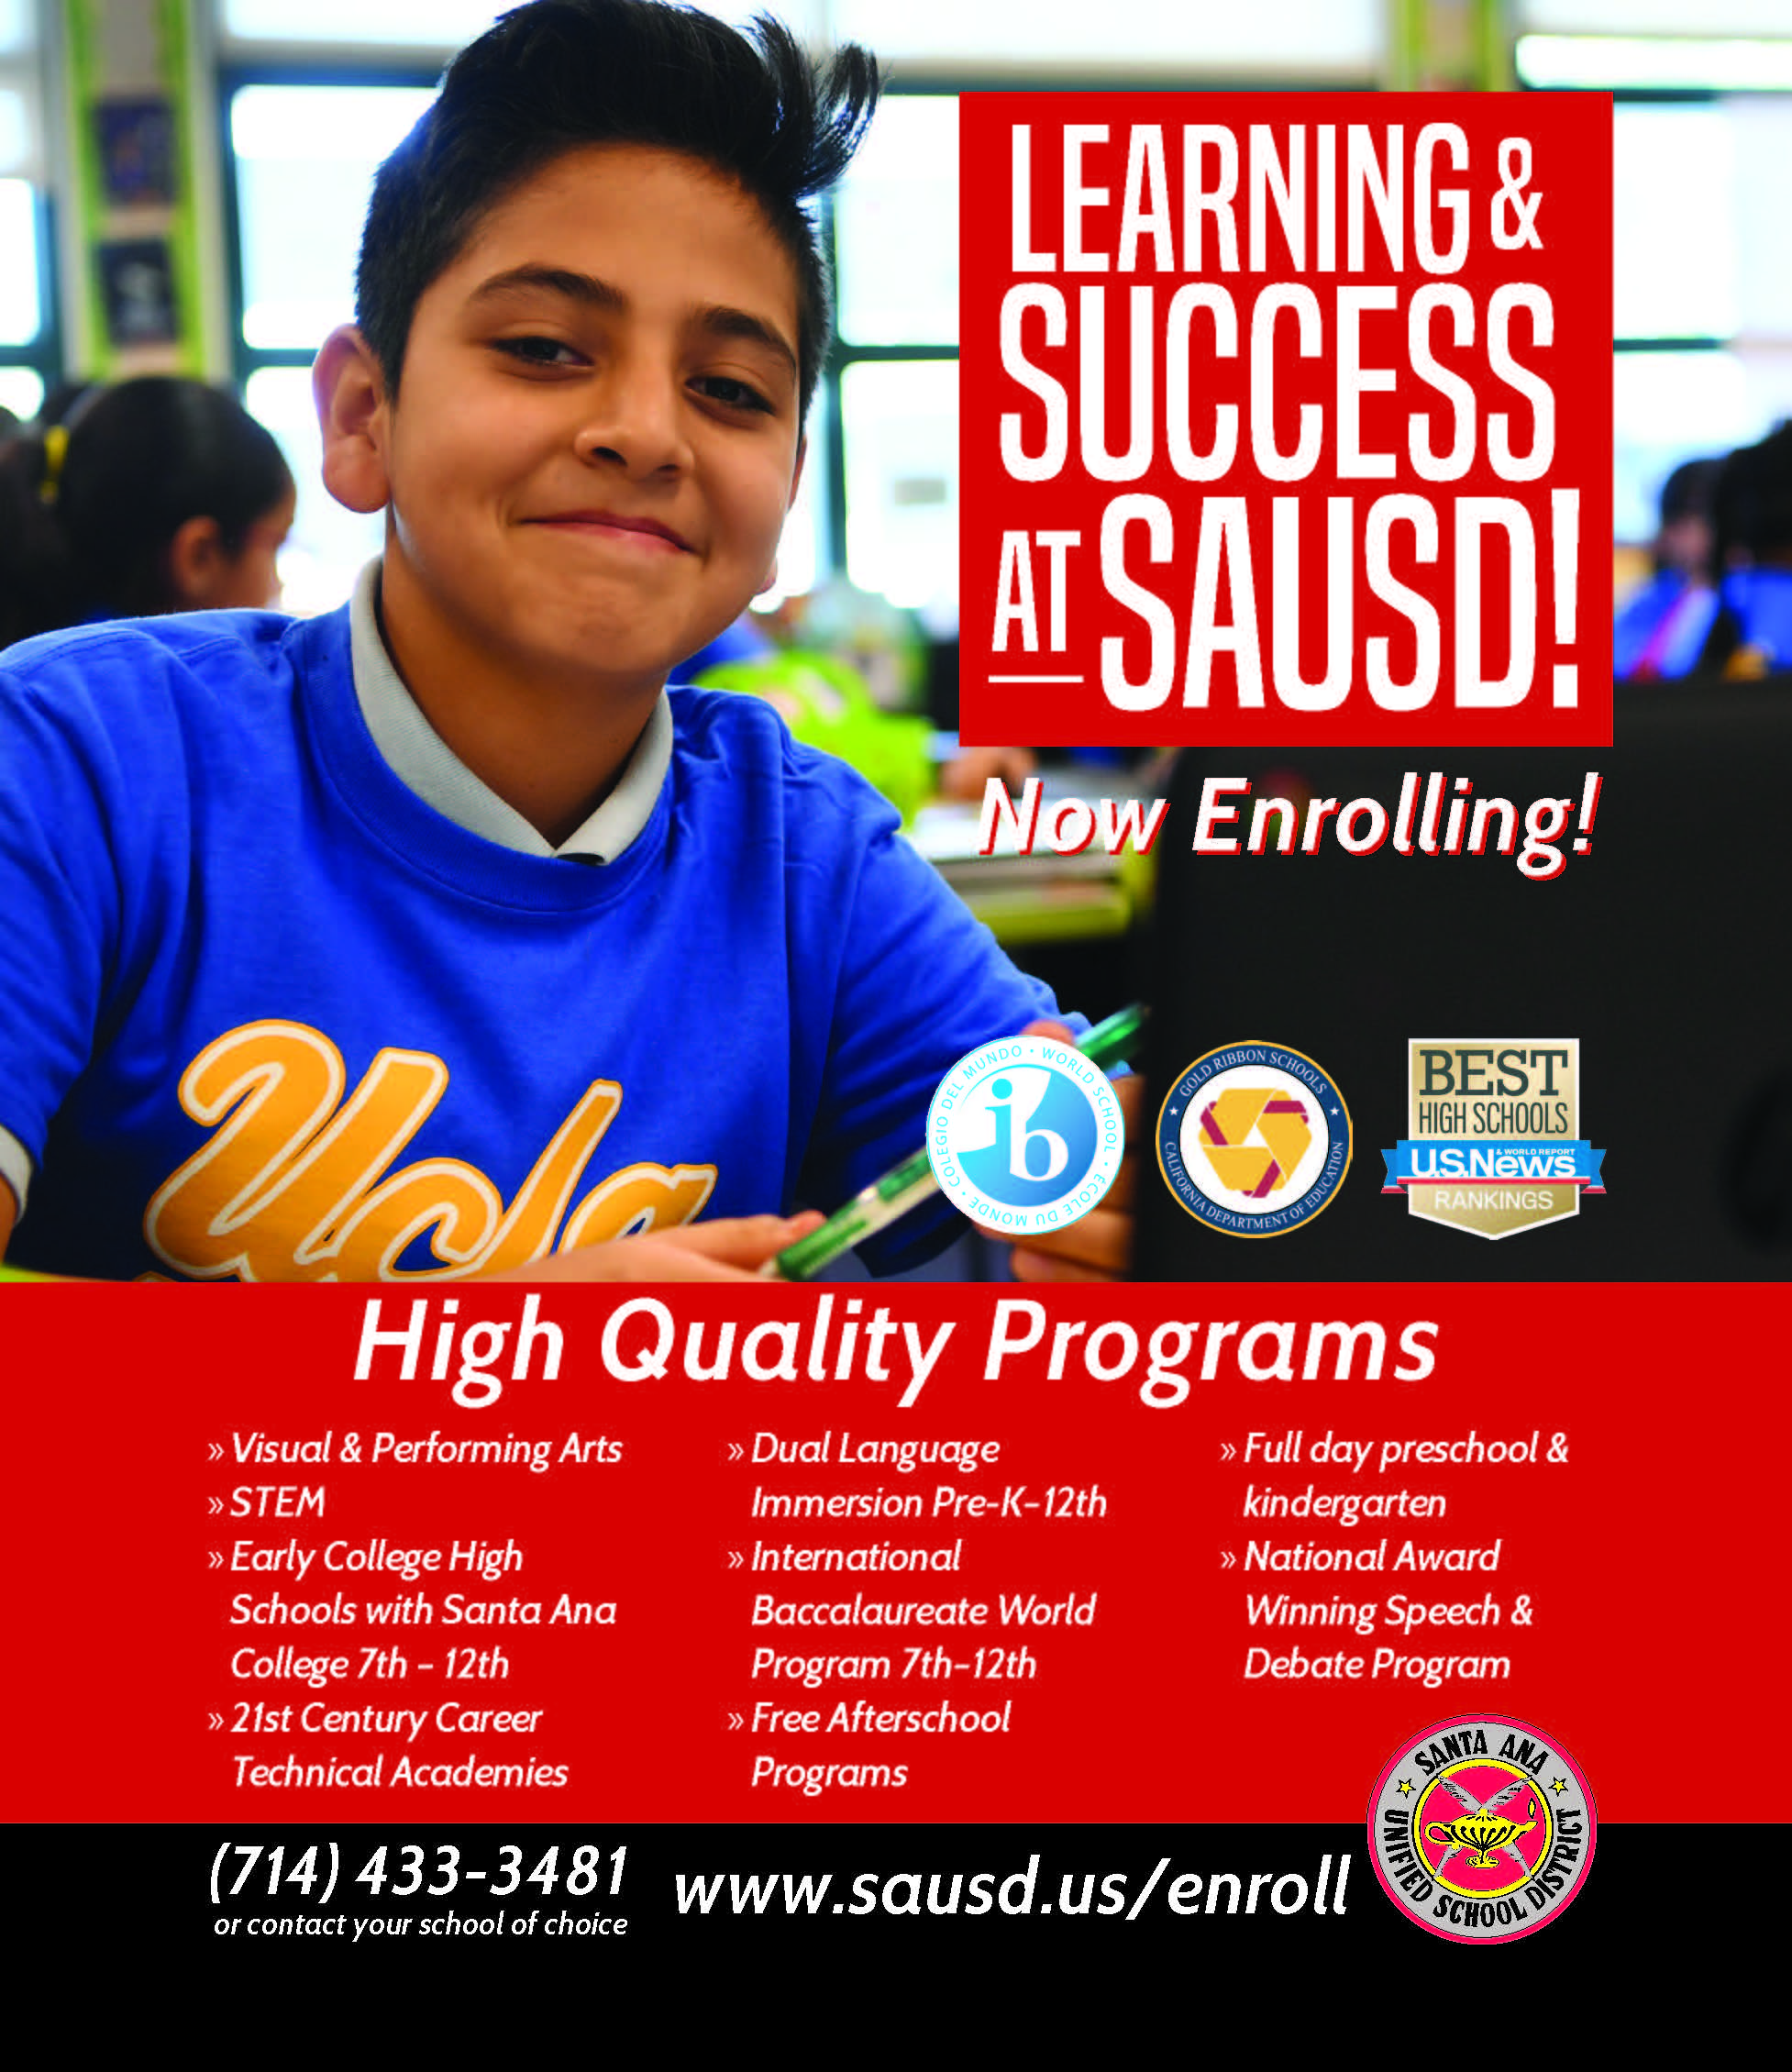 SAUSD success